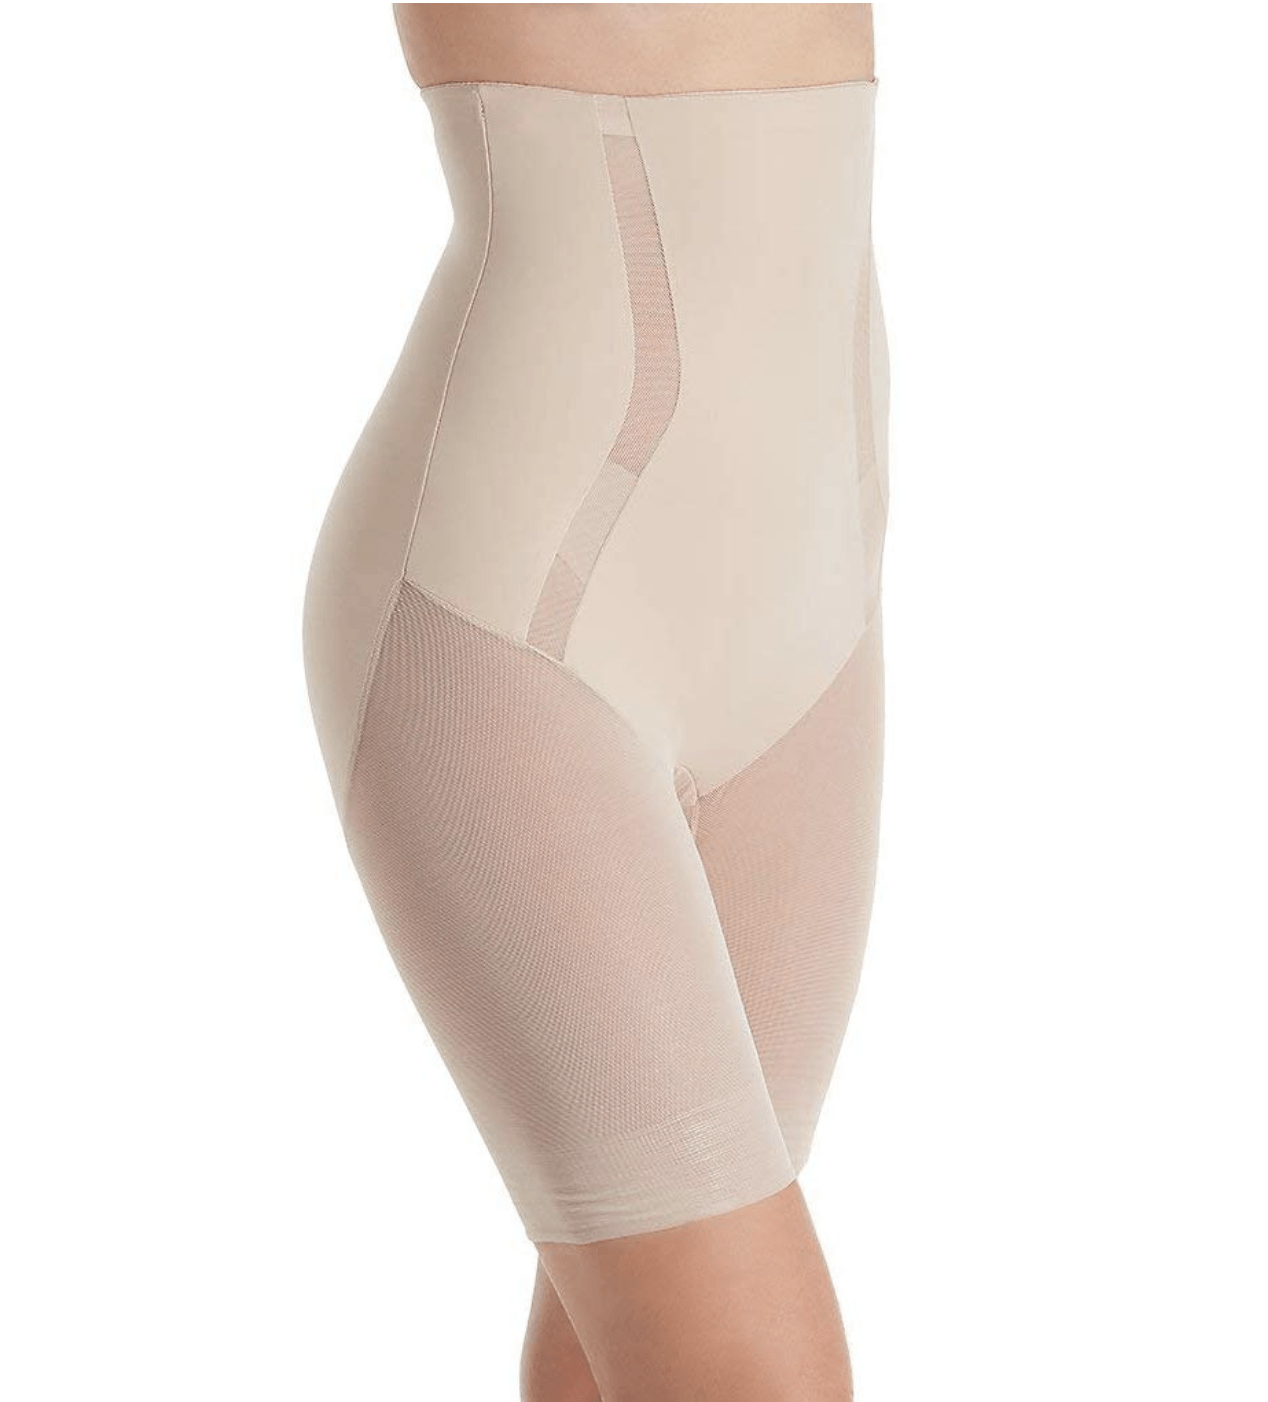 TC Middle Manager Hi Waist Thigh Slimmer 4289 Shapewear Nude / S TC